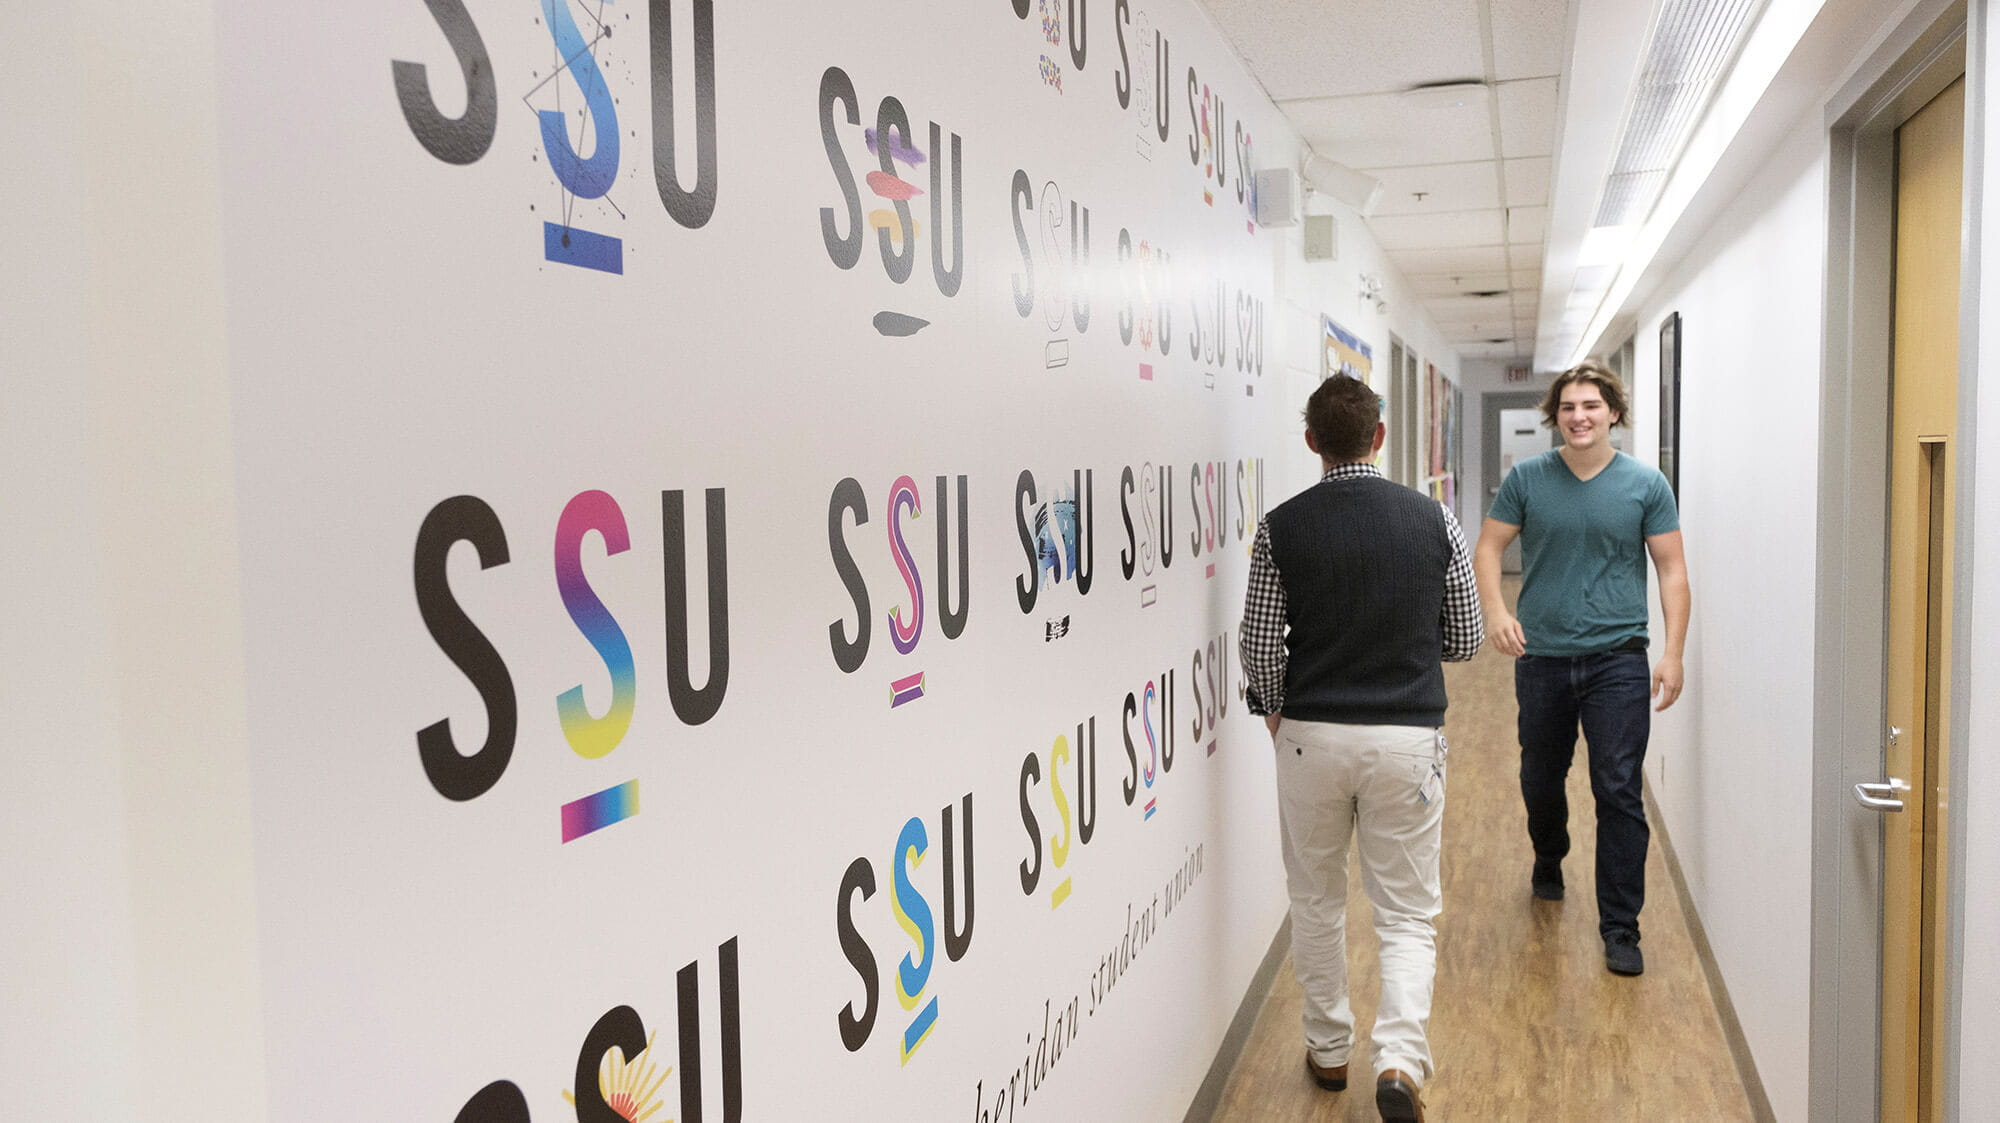 Students walking down a hallway with the SSU logo on the wall